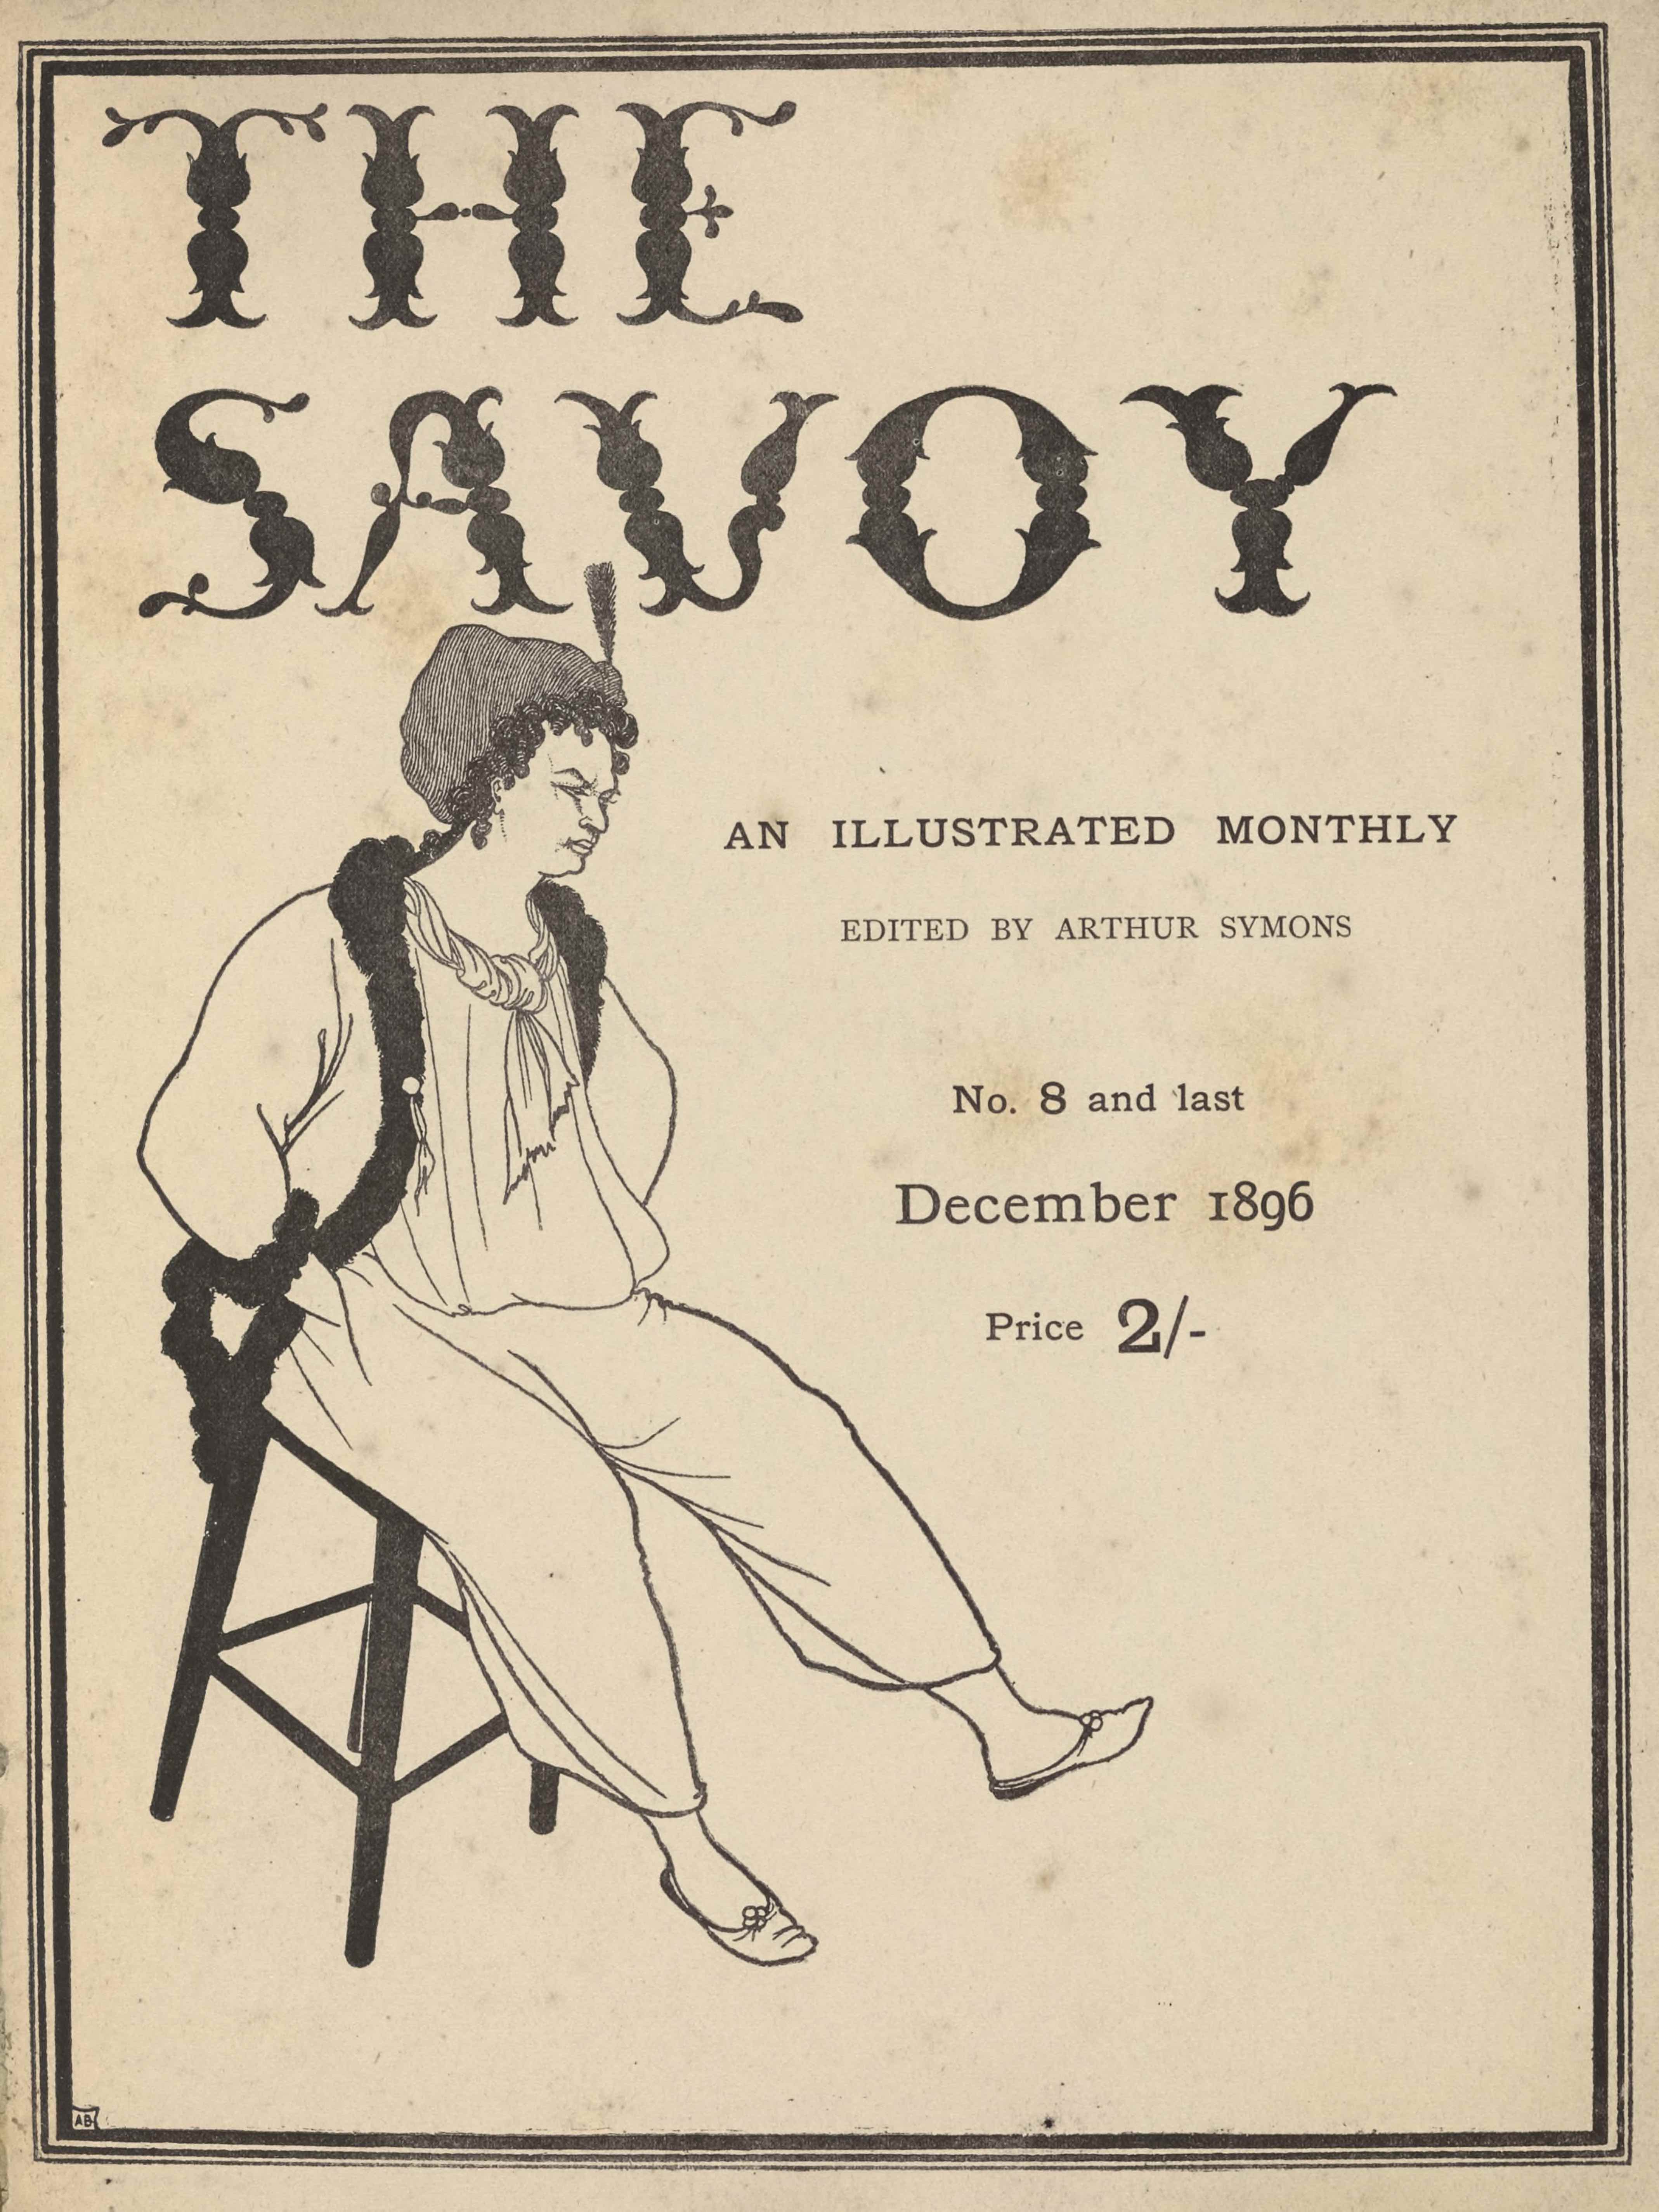 """The triple-lined title page, in portrait orientation, combines a line-block reproduction of a pen-and-ink design with letterpress. Across the top of the page, in fancy black lettering, appears the title: """"THE SAVOY"""" [large caps]. This title is done in a unique calligraphy consisting of flowers for the thicker sections of words and stems for the thinner parts. Halfway down the page, on the right, is is the subtitle in smaller font that reads: """"AN ILLUSTRATED MONTHLY"""" [caps]. On the line below and printed in a lighter font reads: """"EDITED BY ARTHUR SYMONS"""" [small caps]. On the subsequent line below is printed: """"No. 8 and last"""". In bigger font below that the date of publication reads: """"December 1896."""" And below that reads: """"Price 2/-"""". Below the title and to the left of the publishing information sits a figure, possibly a Pierrot, that takes up the majority of the left half of the page. The figure, who seems to be male, is sitting on a stool facing right; the stool is tilted forward with the back legs off the ground. He has his hands in his trouser pockets and a furrowed brow. He has curly black hair that extends part way down his neck and a grey cap over top. The figure has a white ascot tied around his neck and a loose white tunic tucked into baggy white trousers. He has an unbuttoned overcoat, the edges of which are black and textured like thick fur. The figure is wearing plain slippers."""